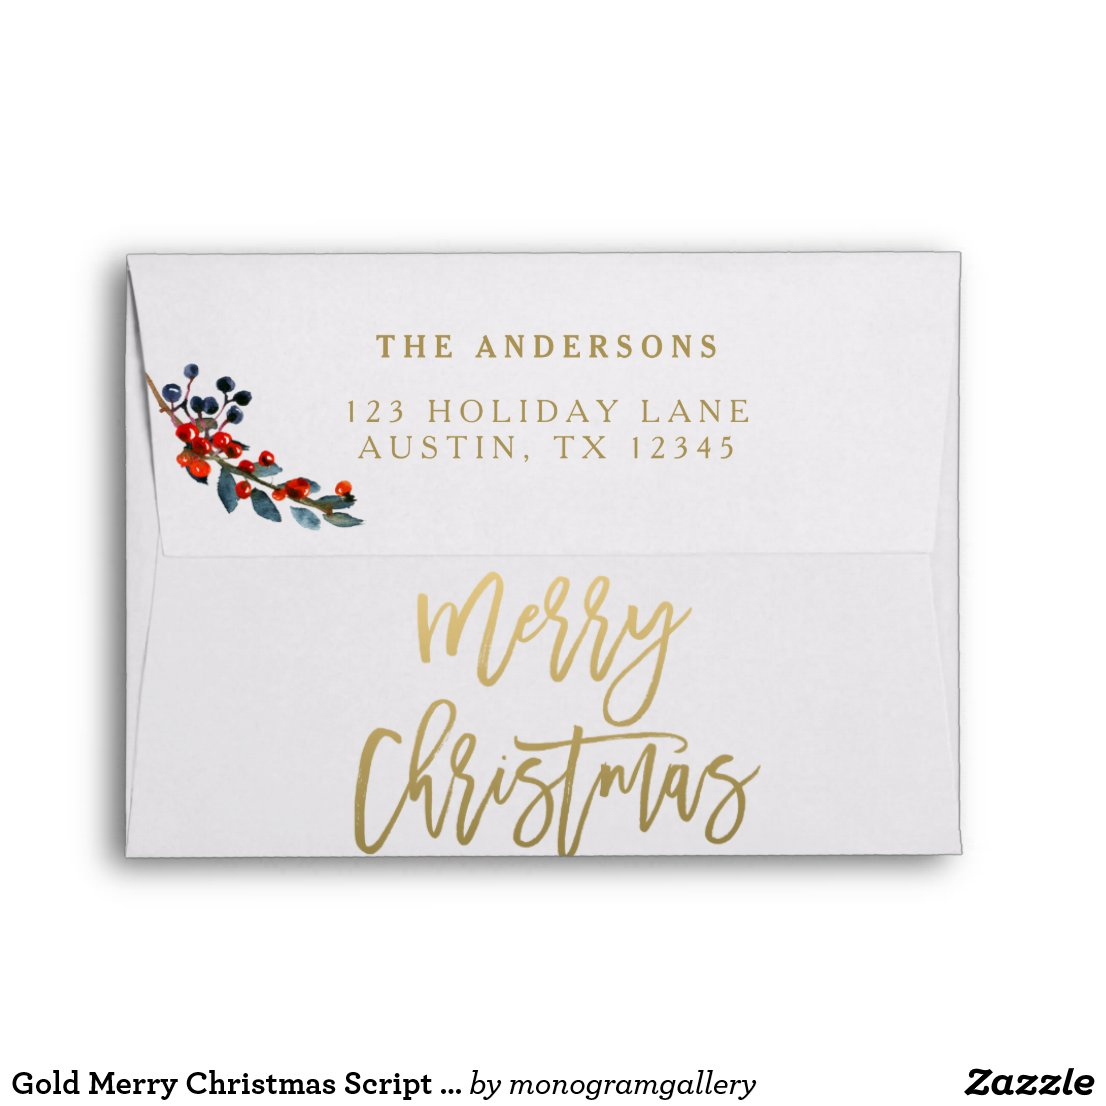 Gold Merry Christmas Script Red Berries Holiday Envelope